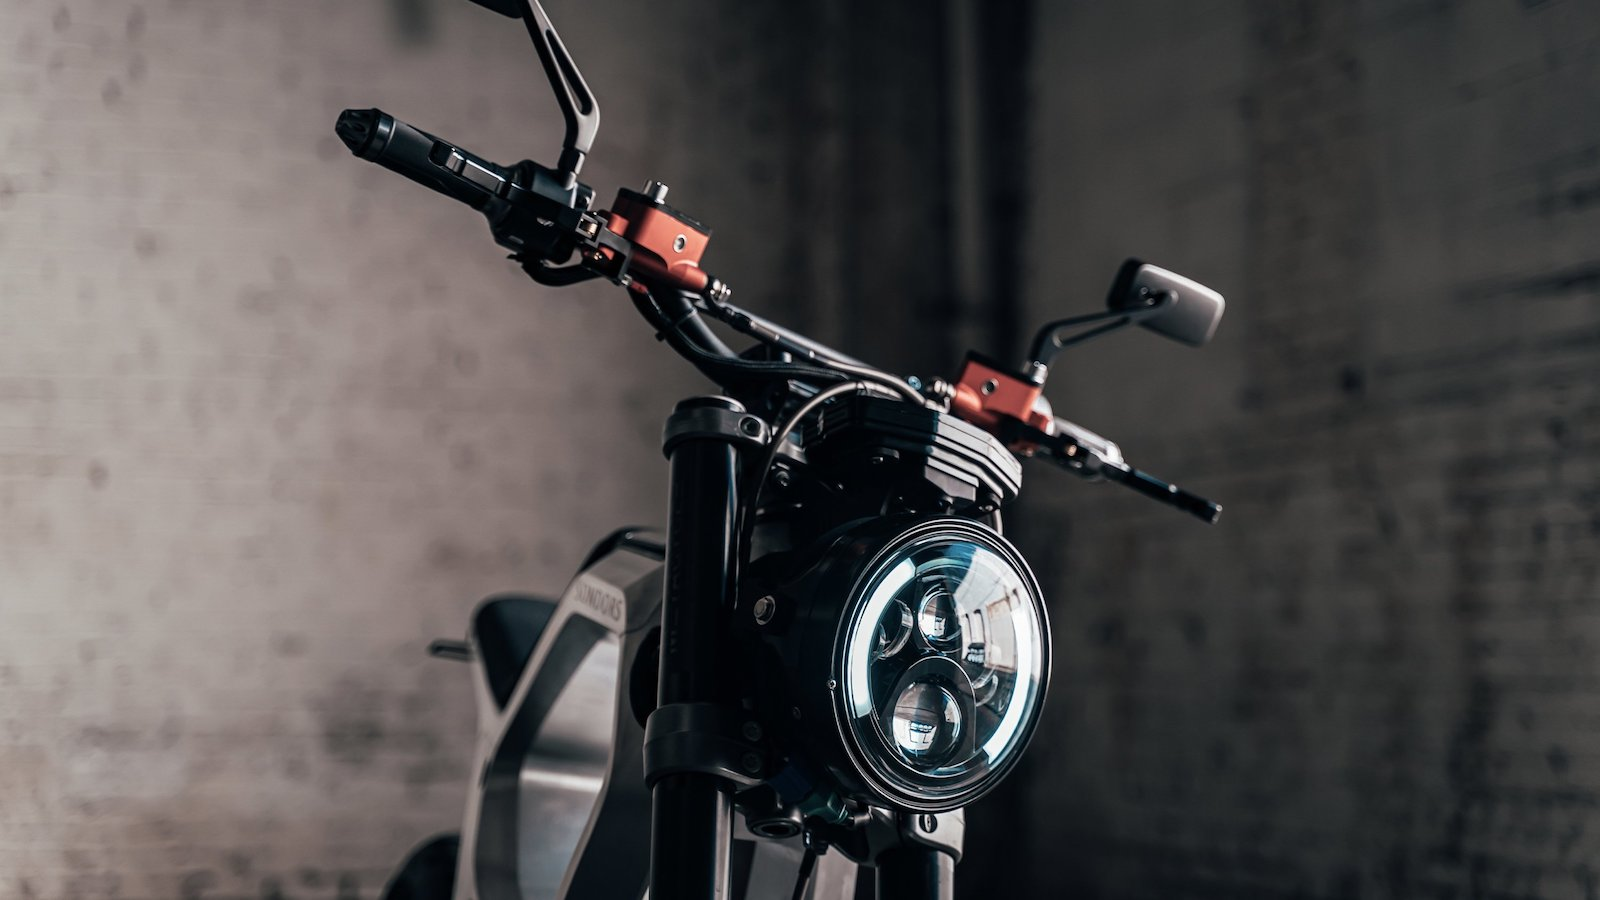 Sondors X Metacycle electric motorbike offers an 80-mile range on a single charge